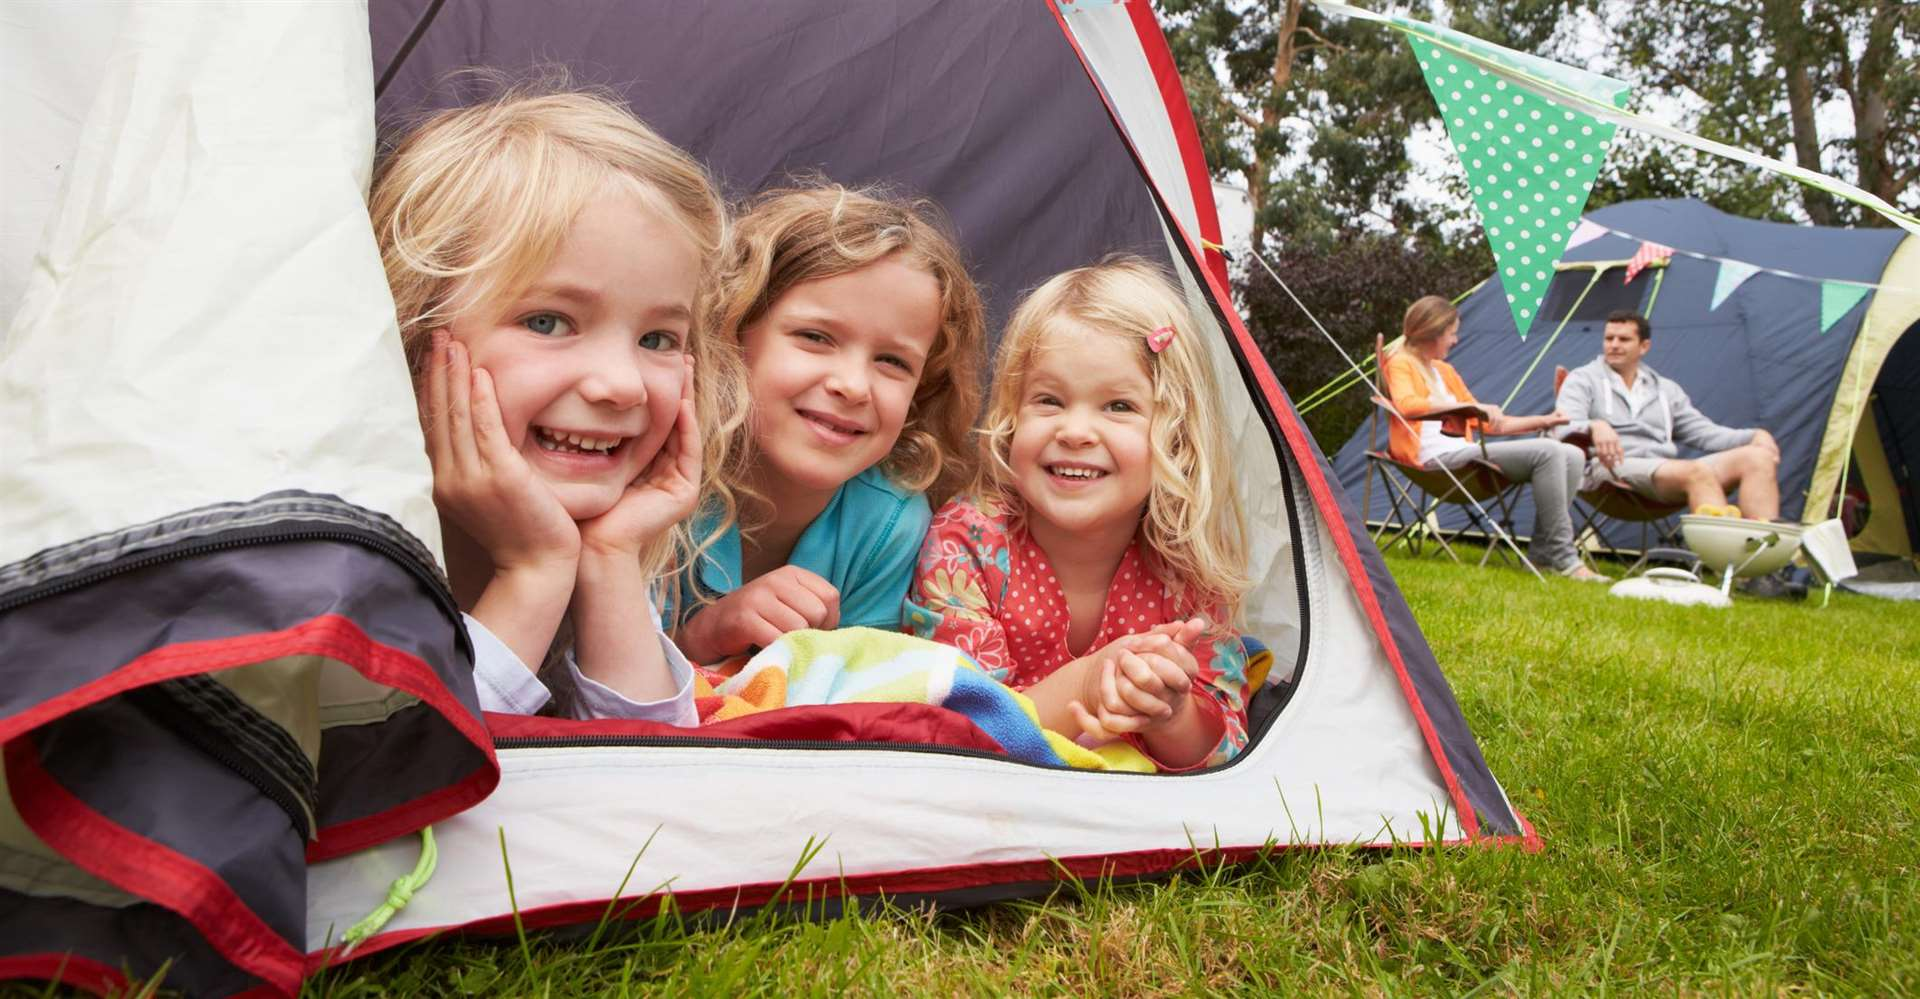 With half term just around the corner, now could be the best time to go camping.